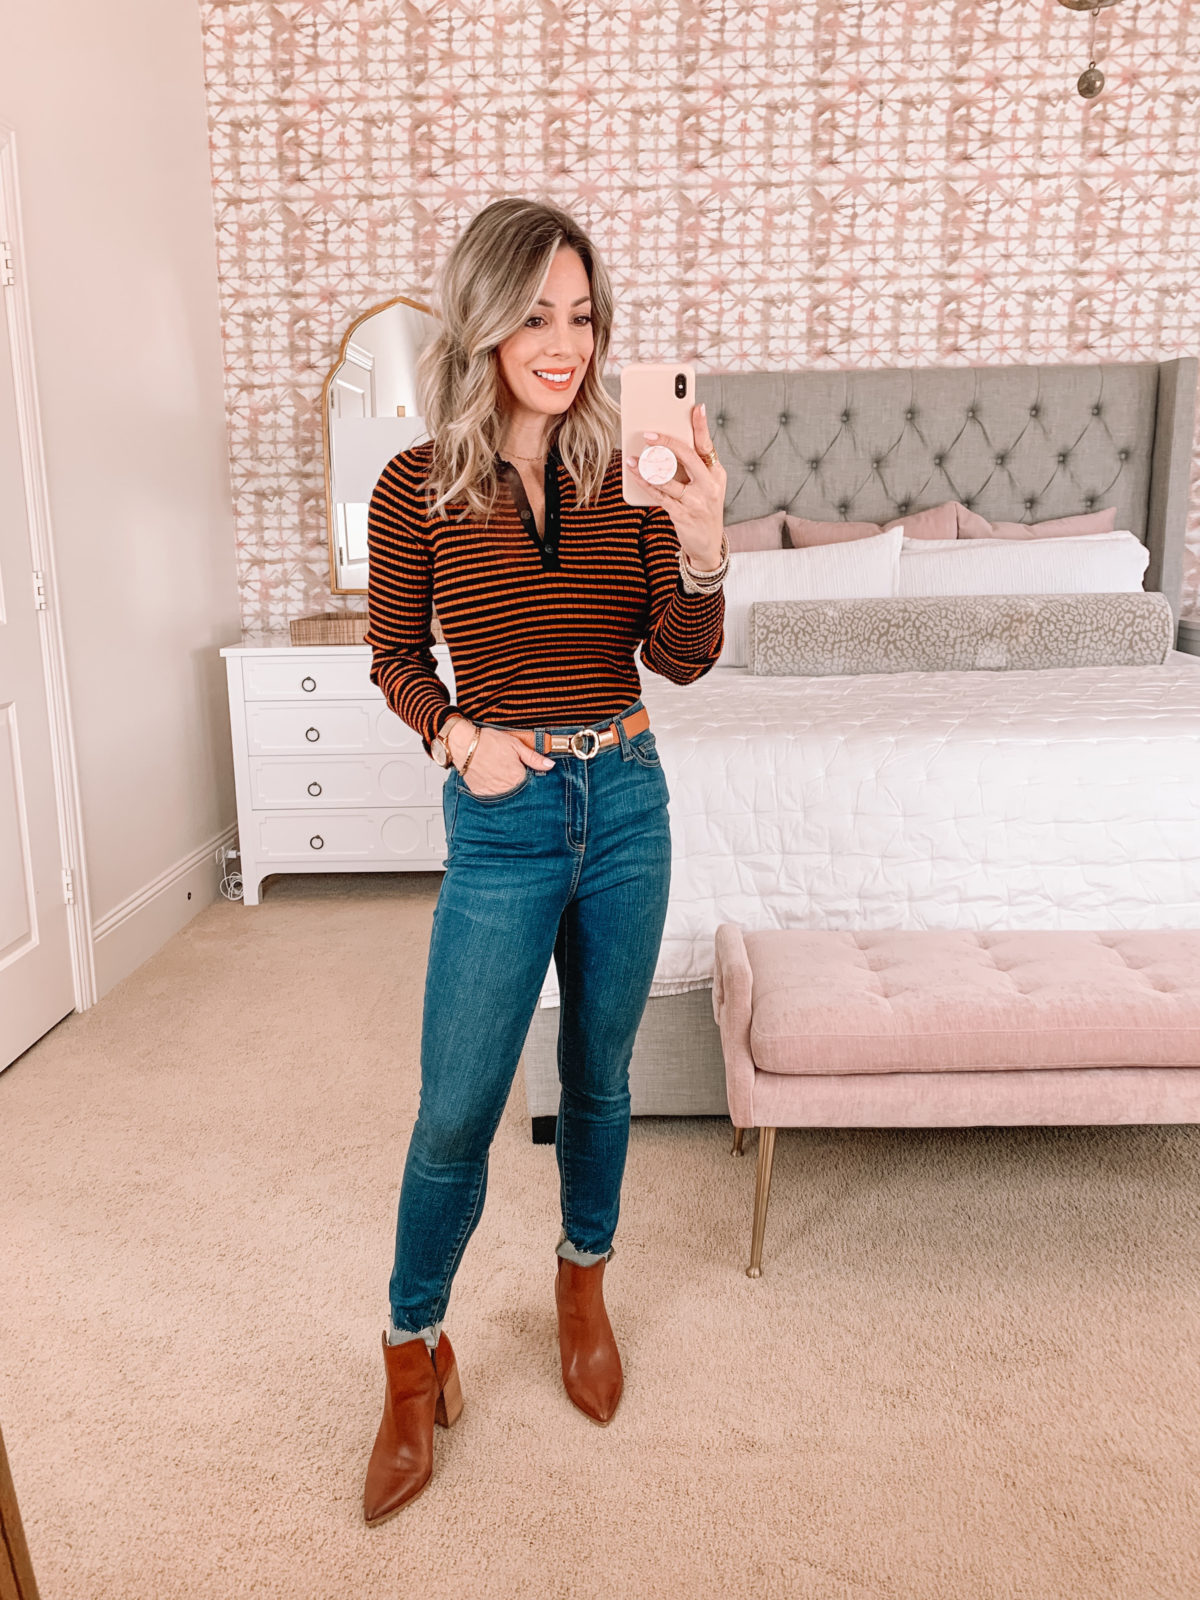 Amazon Fashion Faves, Stripe top, Jeans, Booties